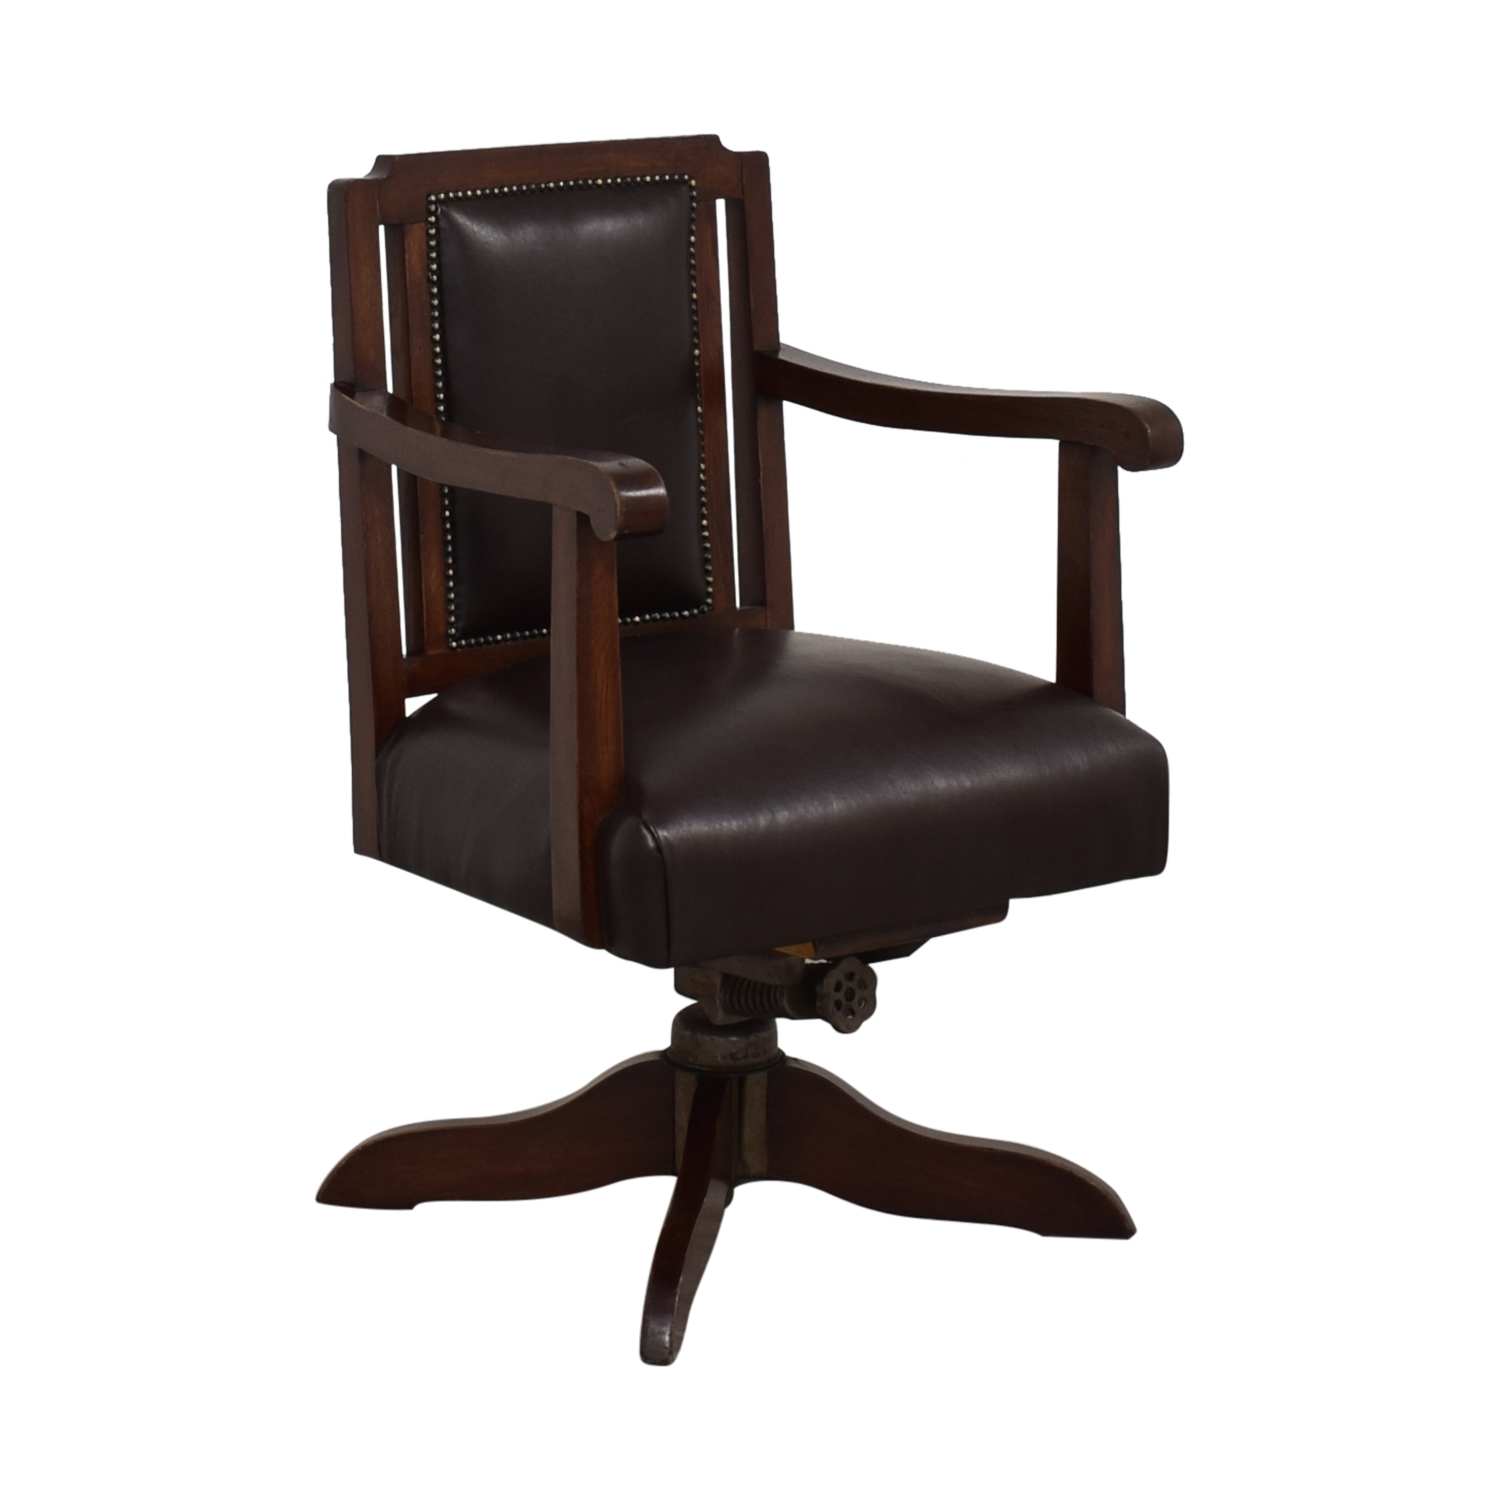 shop Hillcrest Swivel Desk Chair Hillcrest Chair Actions Home Office Chairs